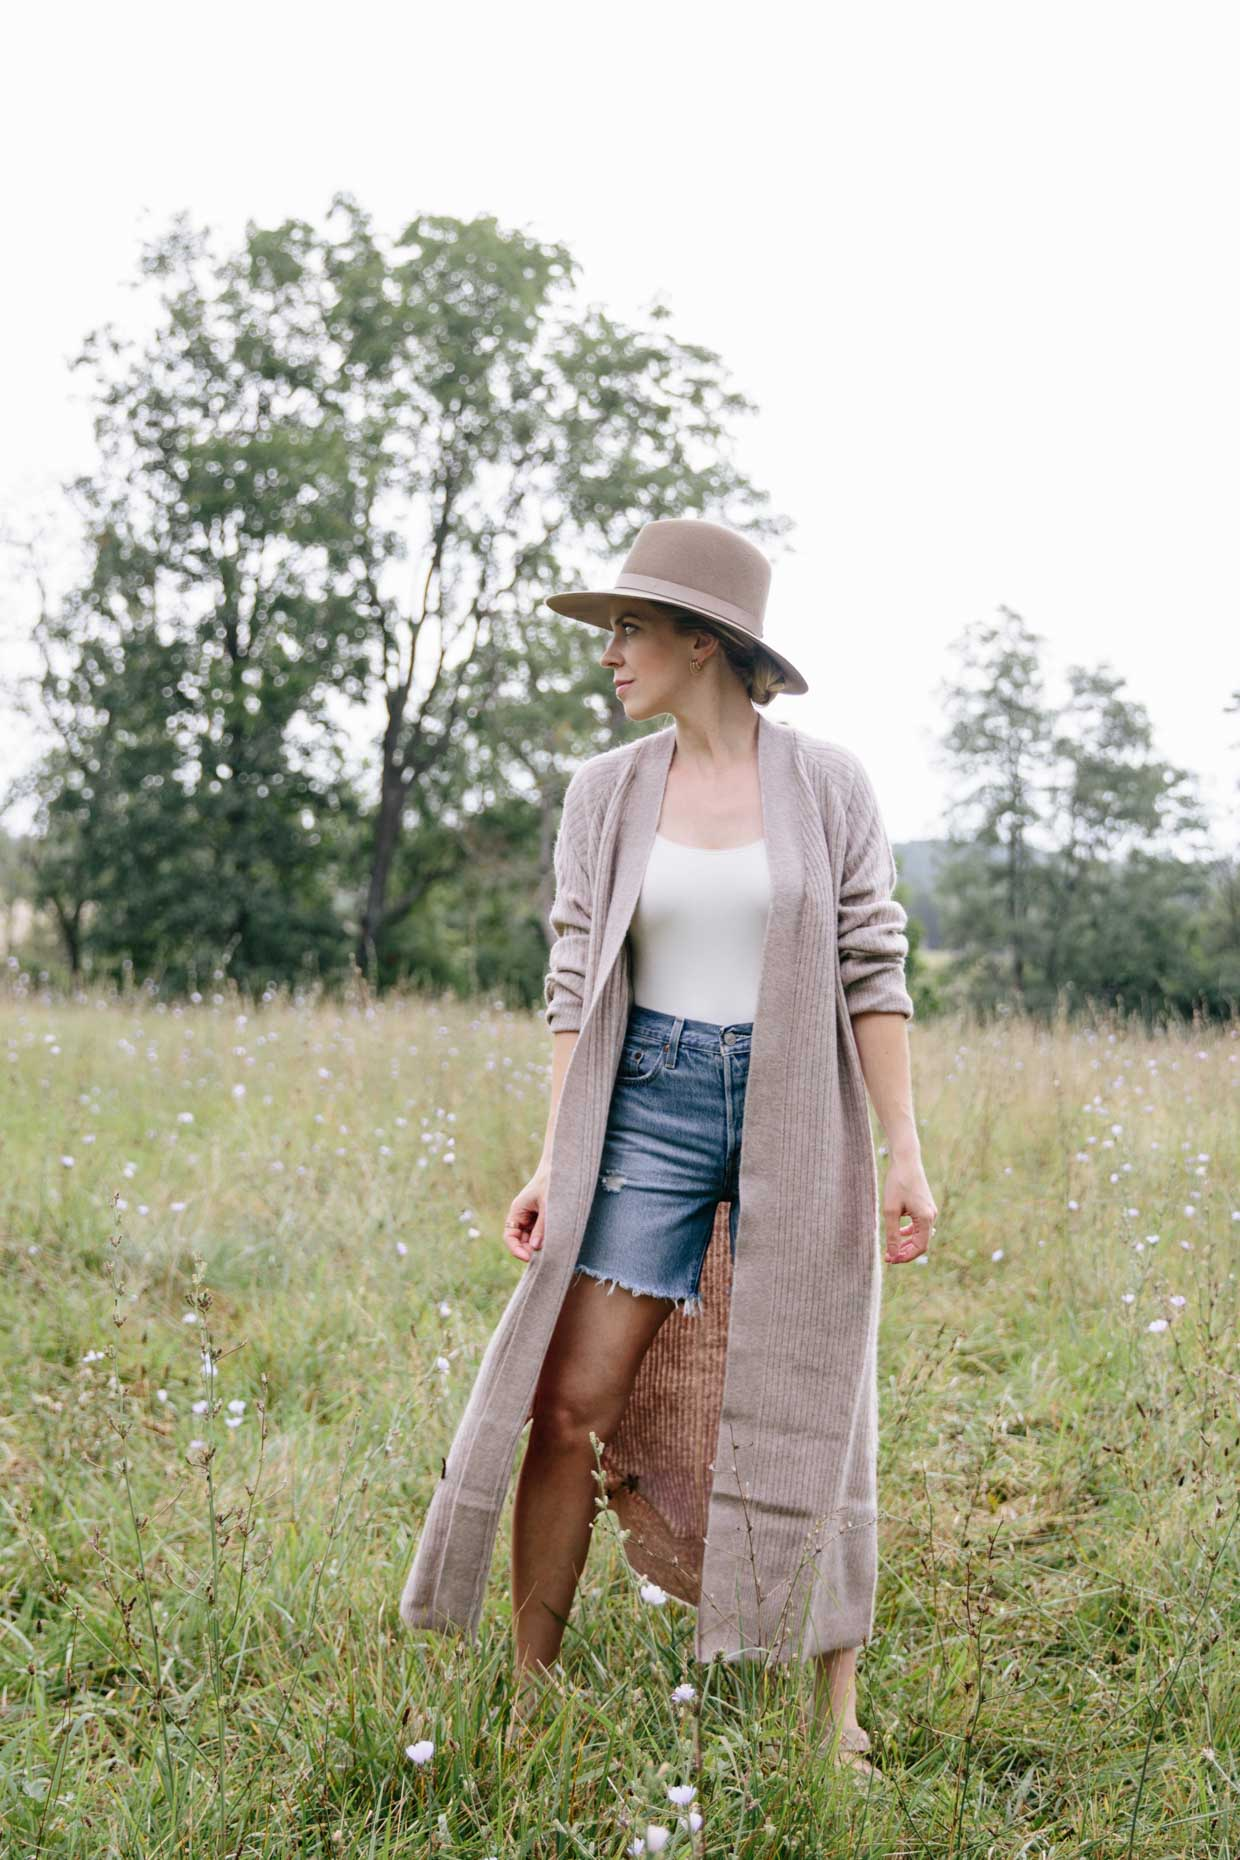 Meagan Brandon style influencer shows how to wear a duster cardigan for early fall with denim shorts and sandals